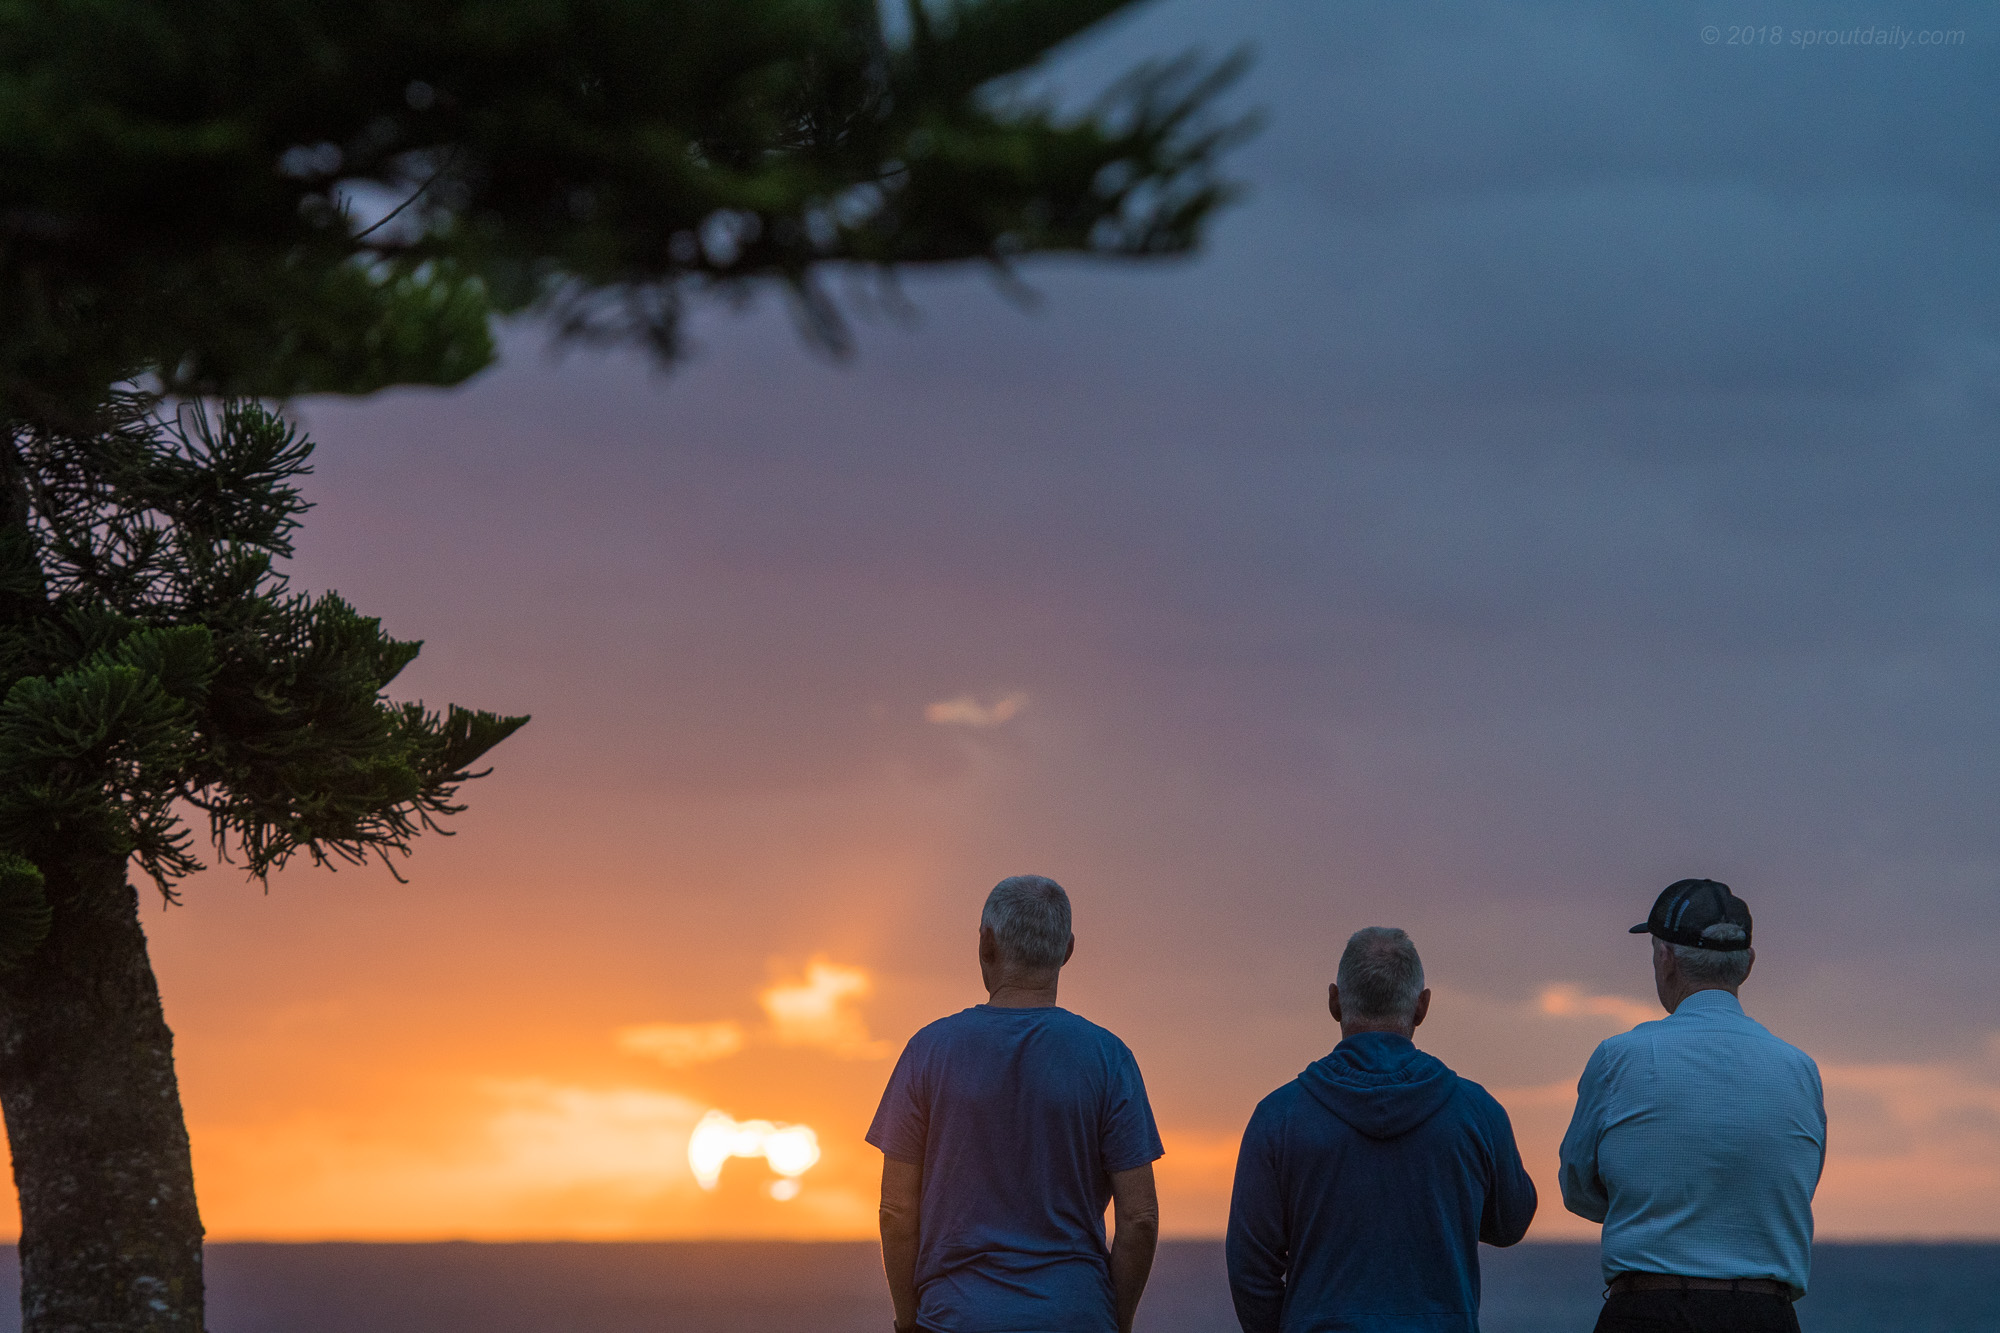 Just three blokes enjoying a Valentines Day sunrise together...